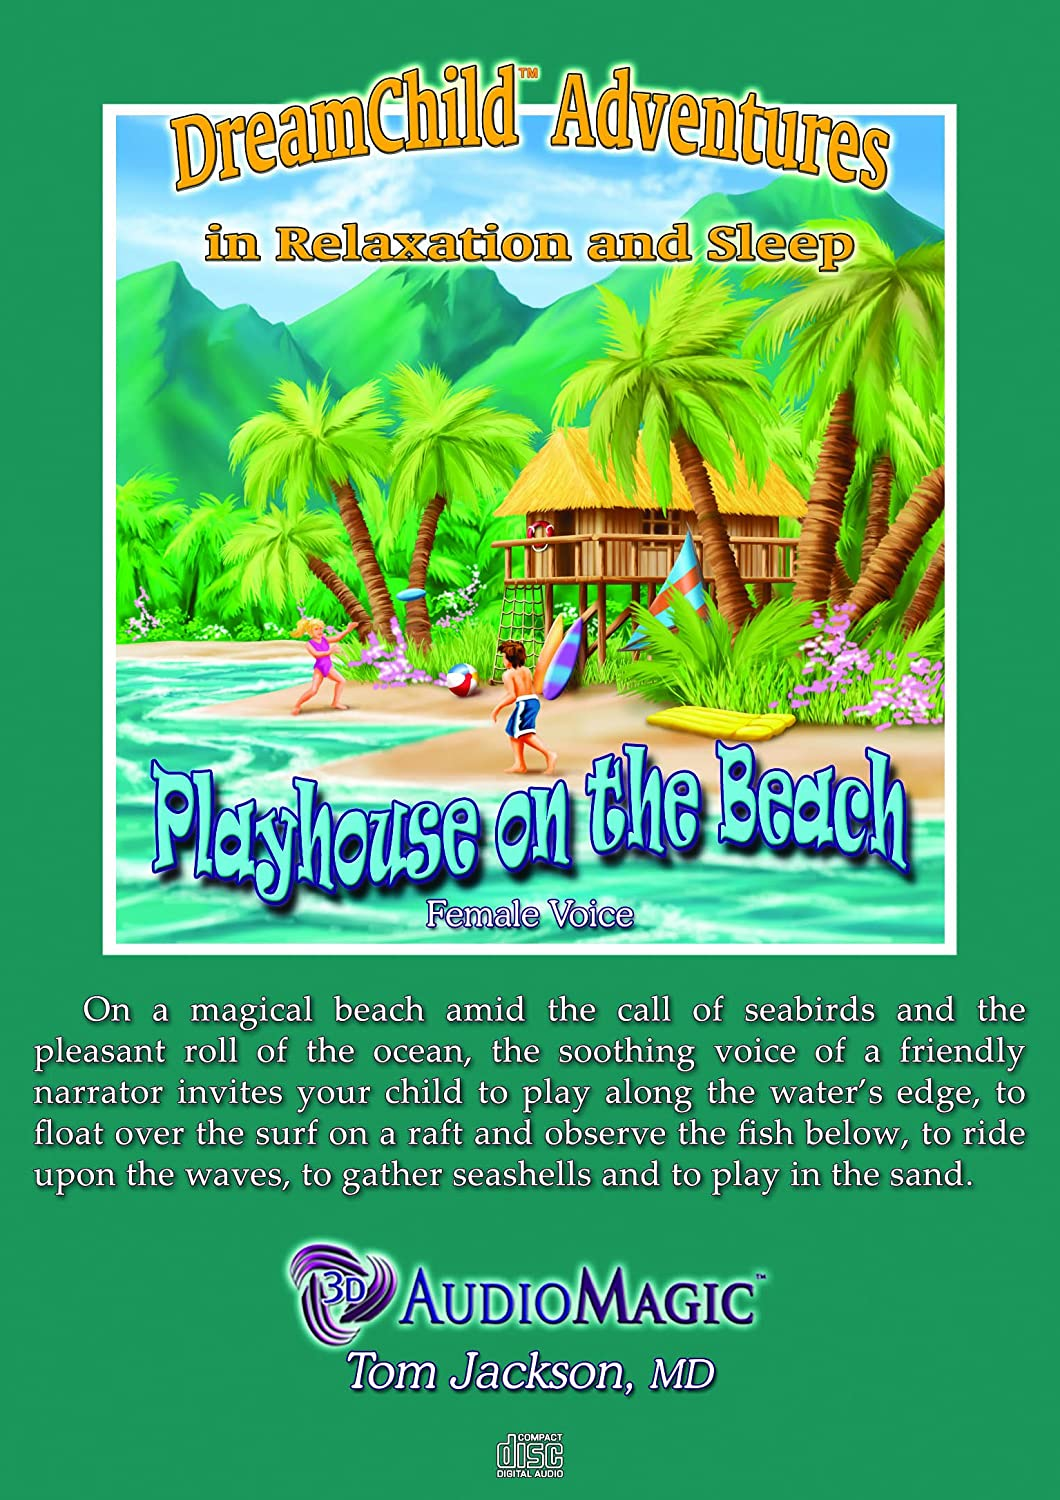 Tom Jackson M.D. - Playhouse on the Beach (Female Voice) - Amazon.com Music